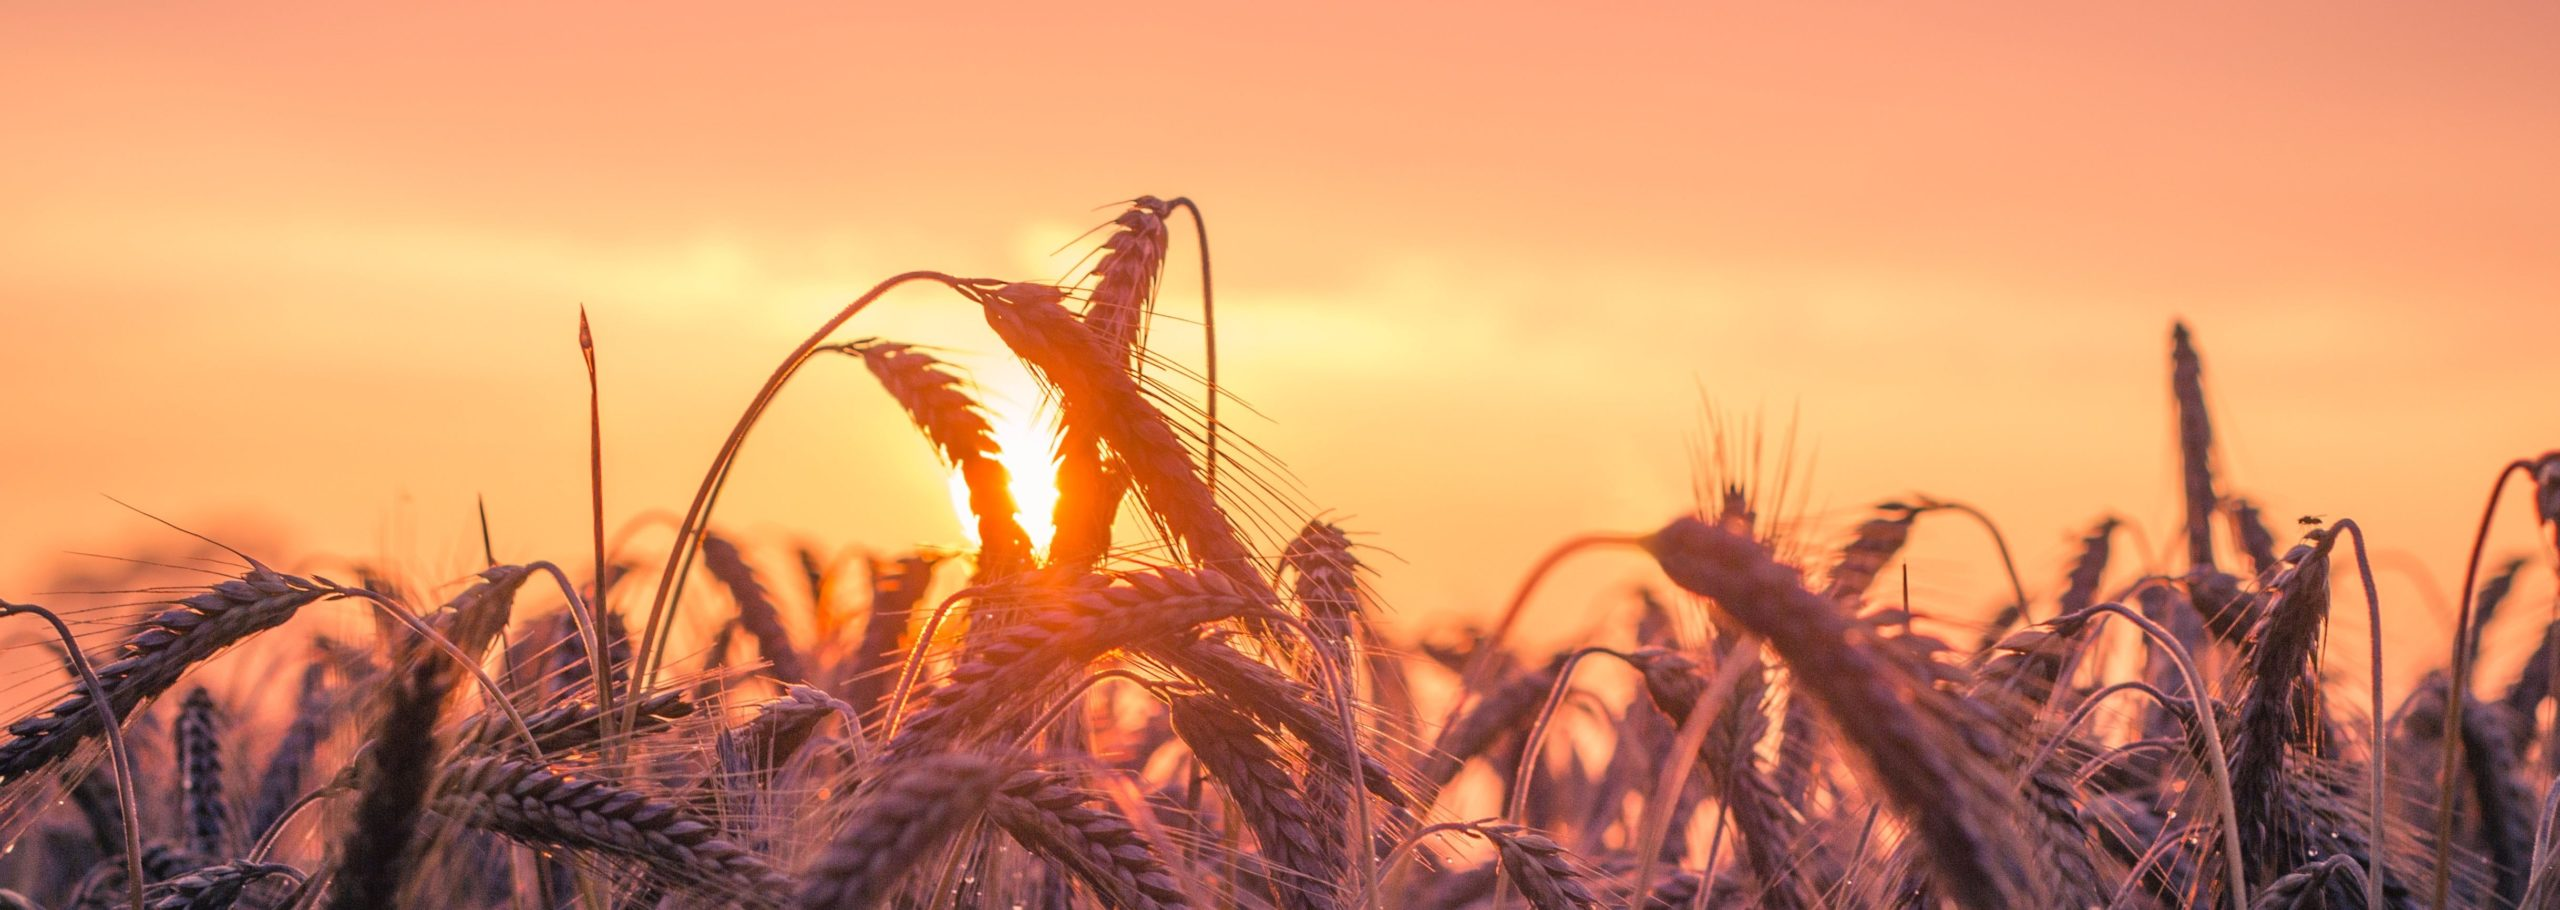 picture of wheat at golden hour